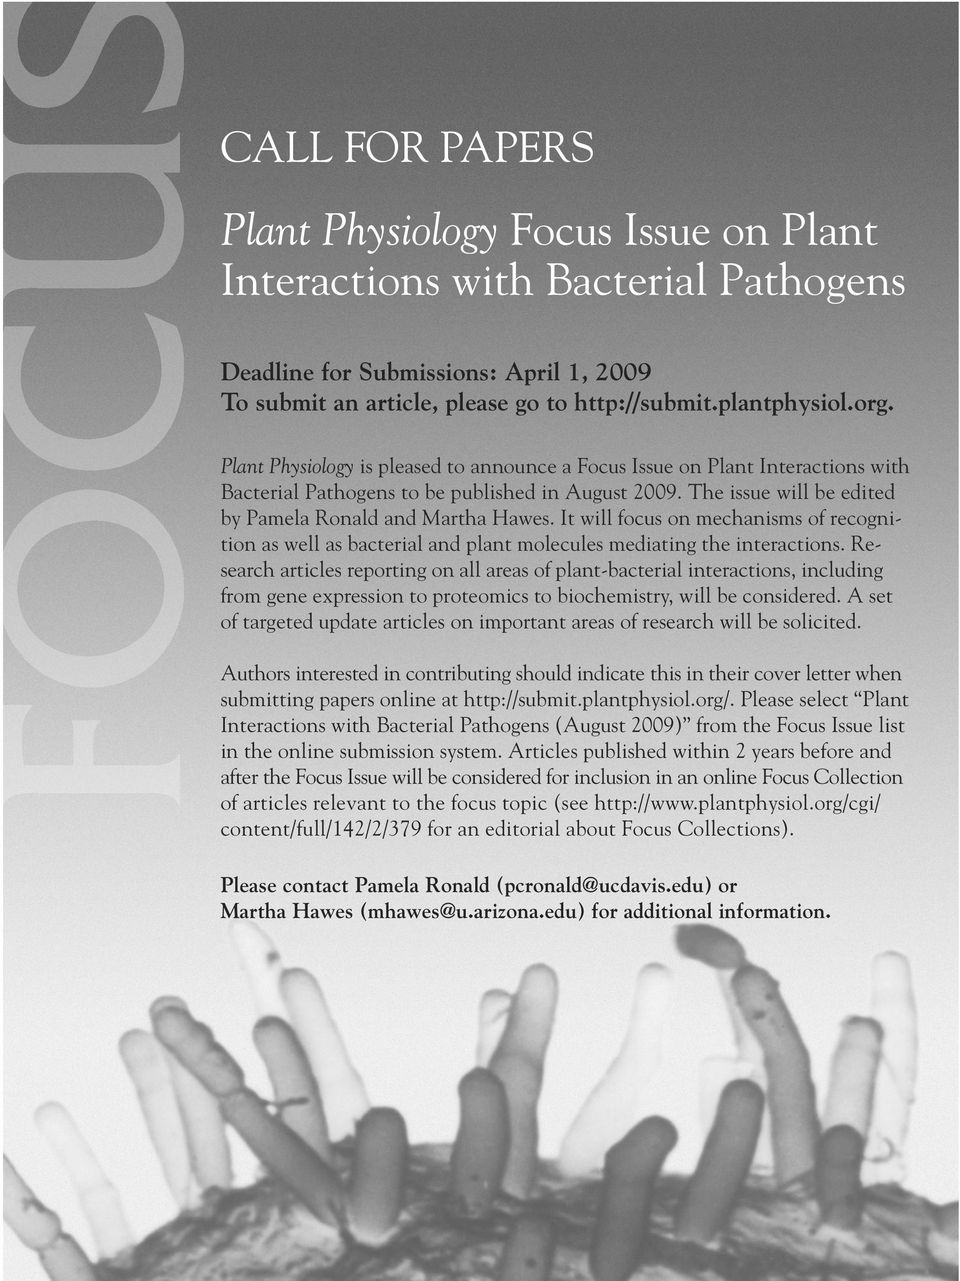 Plant Physiology is pleased to announce a Focus Issue on Plant Interactions with Bacterial Pathogens to be published in August 2009. The issue will be edited by Pamela Ronald and Martha Hawes.